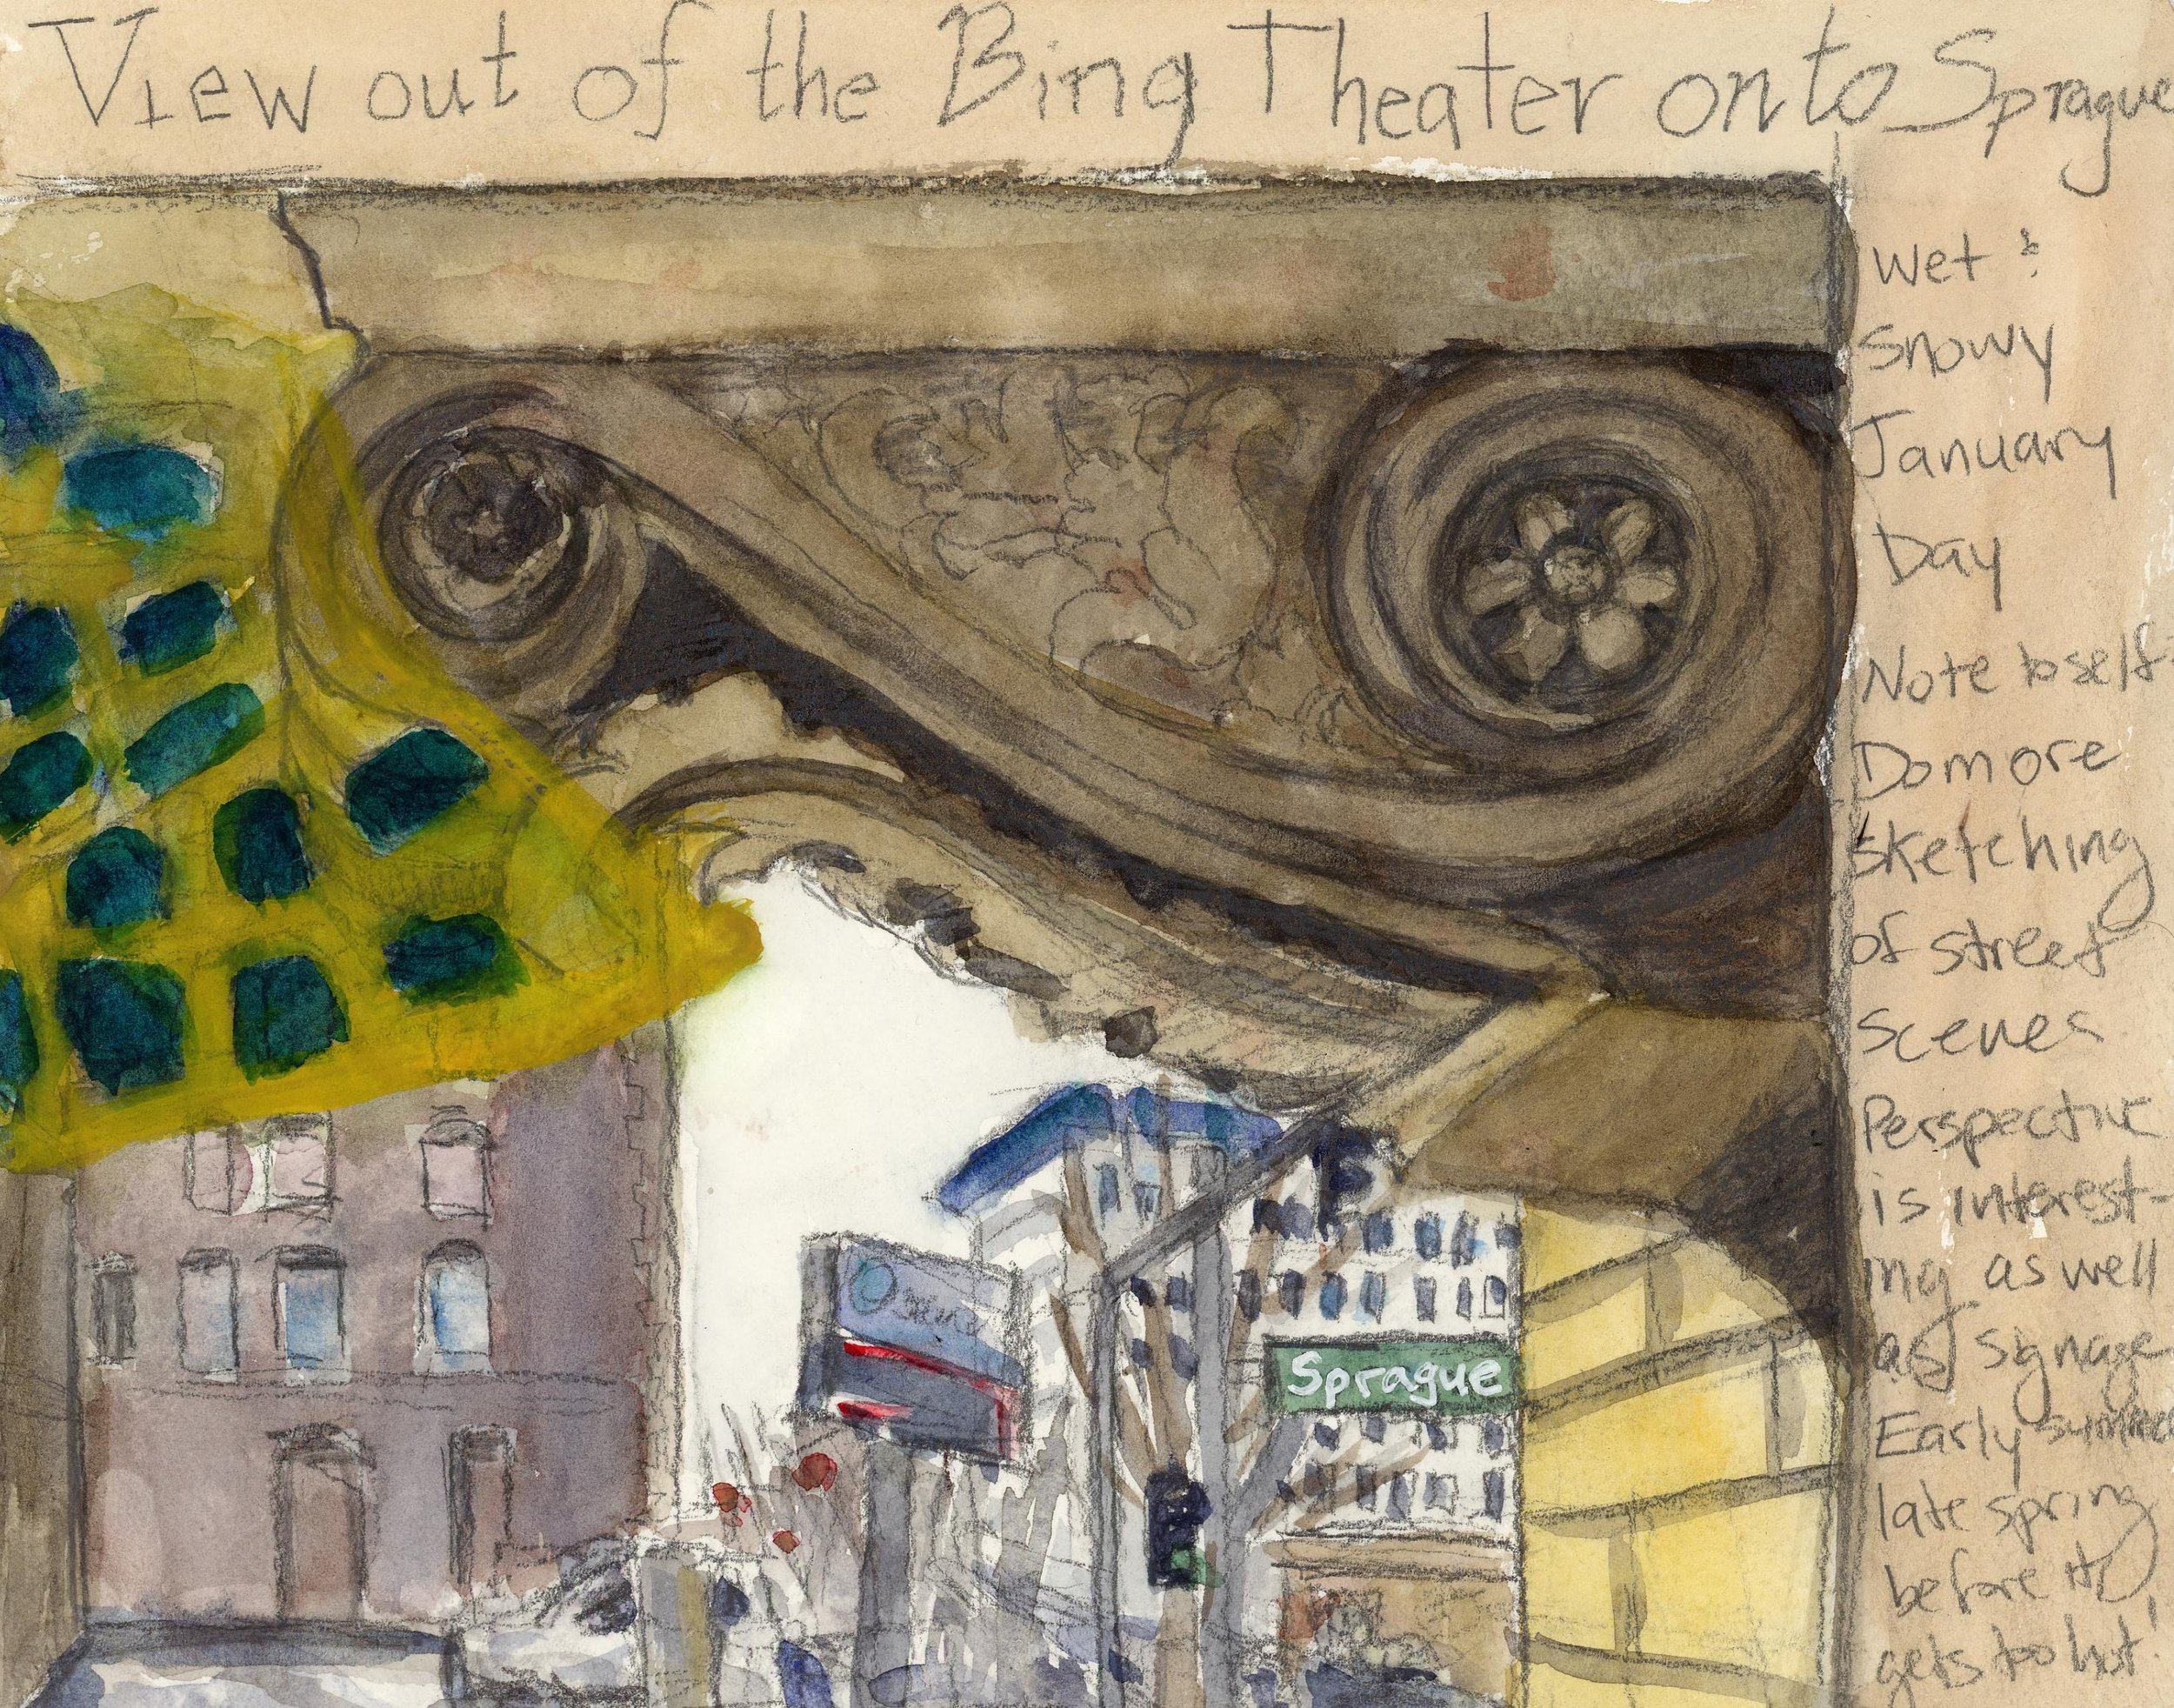 This one is rather different than the other paintings. I'm trying to use Artist's Eye on Spokane to push myself in new directions and experiment, rather than just cranking out the same drawings and paintings the whole time. This is a view from the inside lobby of the Bing. The gold and blue shape on the left is the coffered ceiling reflecting on the inside of the window.